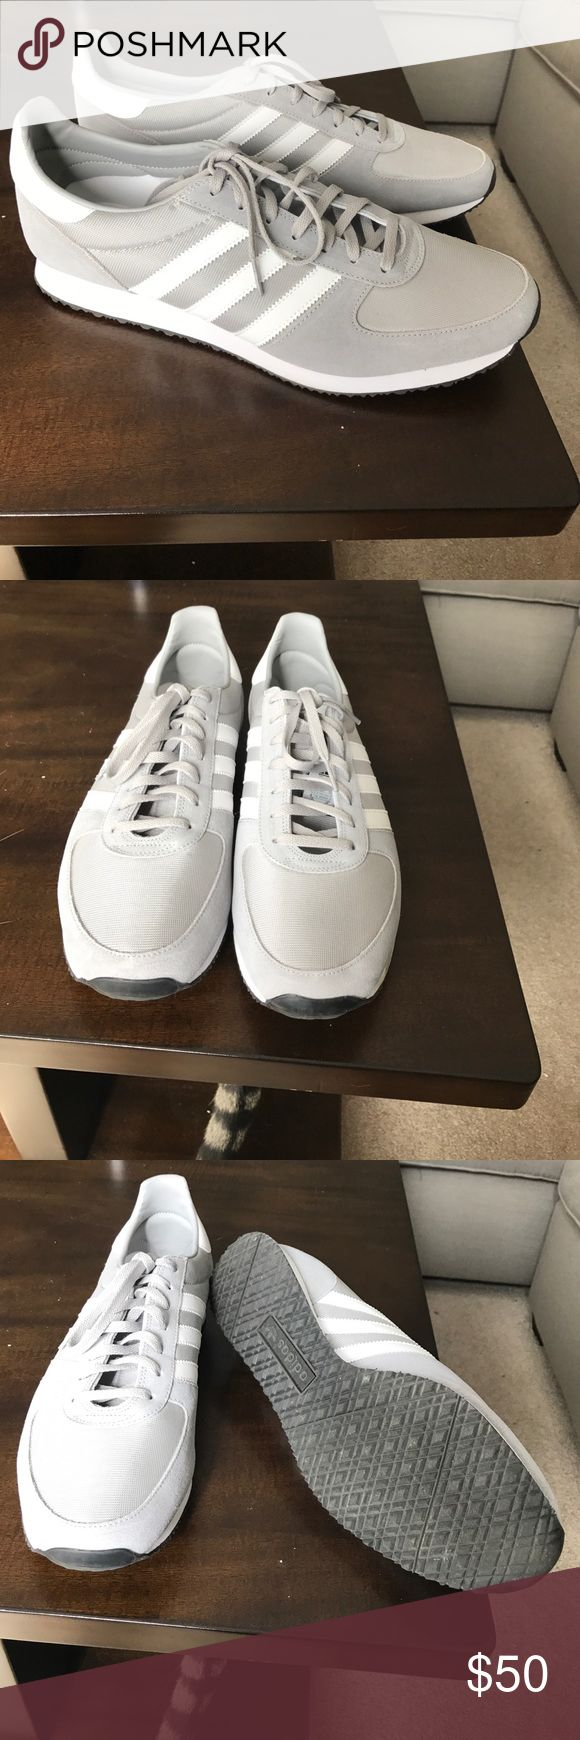 Men's size 13 Adidas ZX Racer Men's 13 grey and white  Adidas ZX racer sneakers in perfect condition only worn once for 2 hours adidas Shoes Sneakers